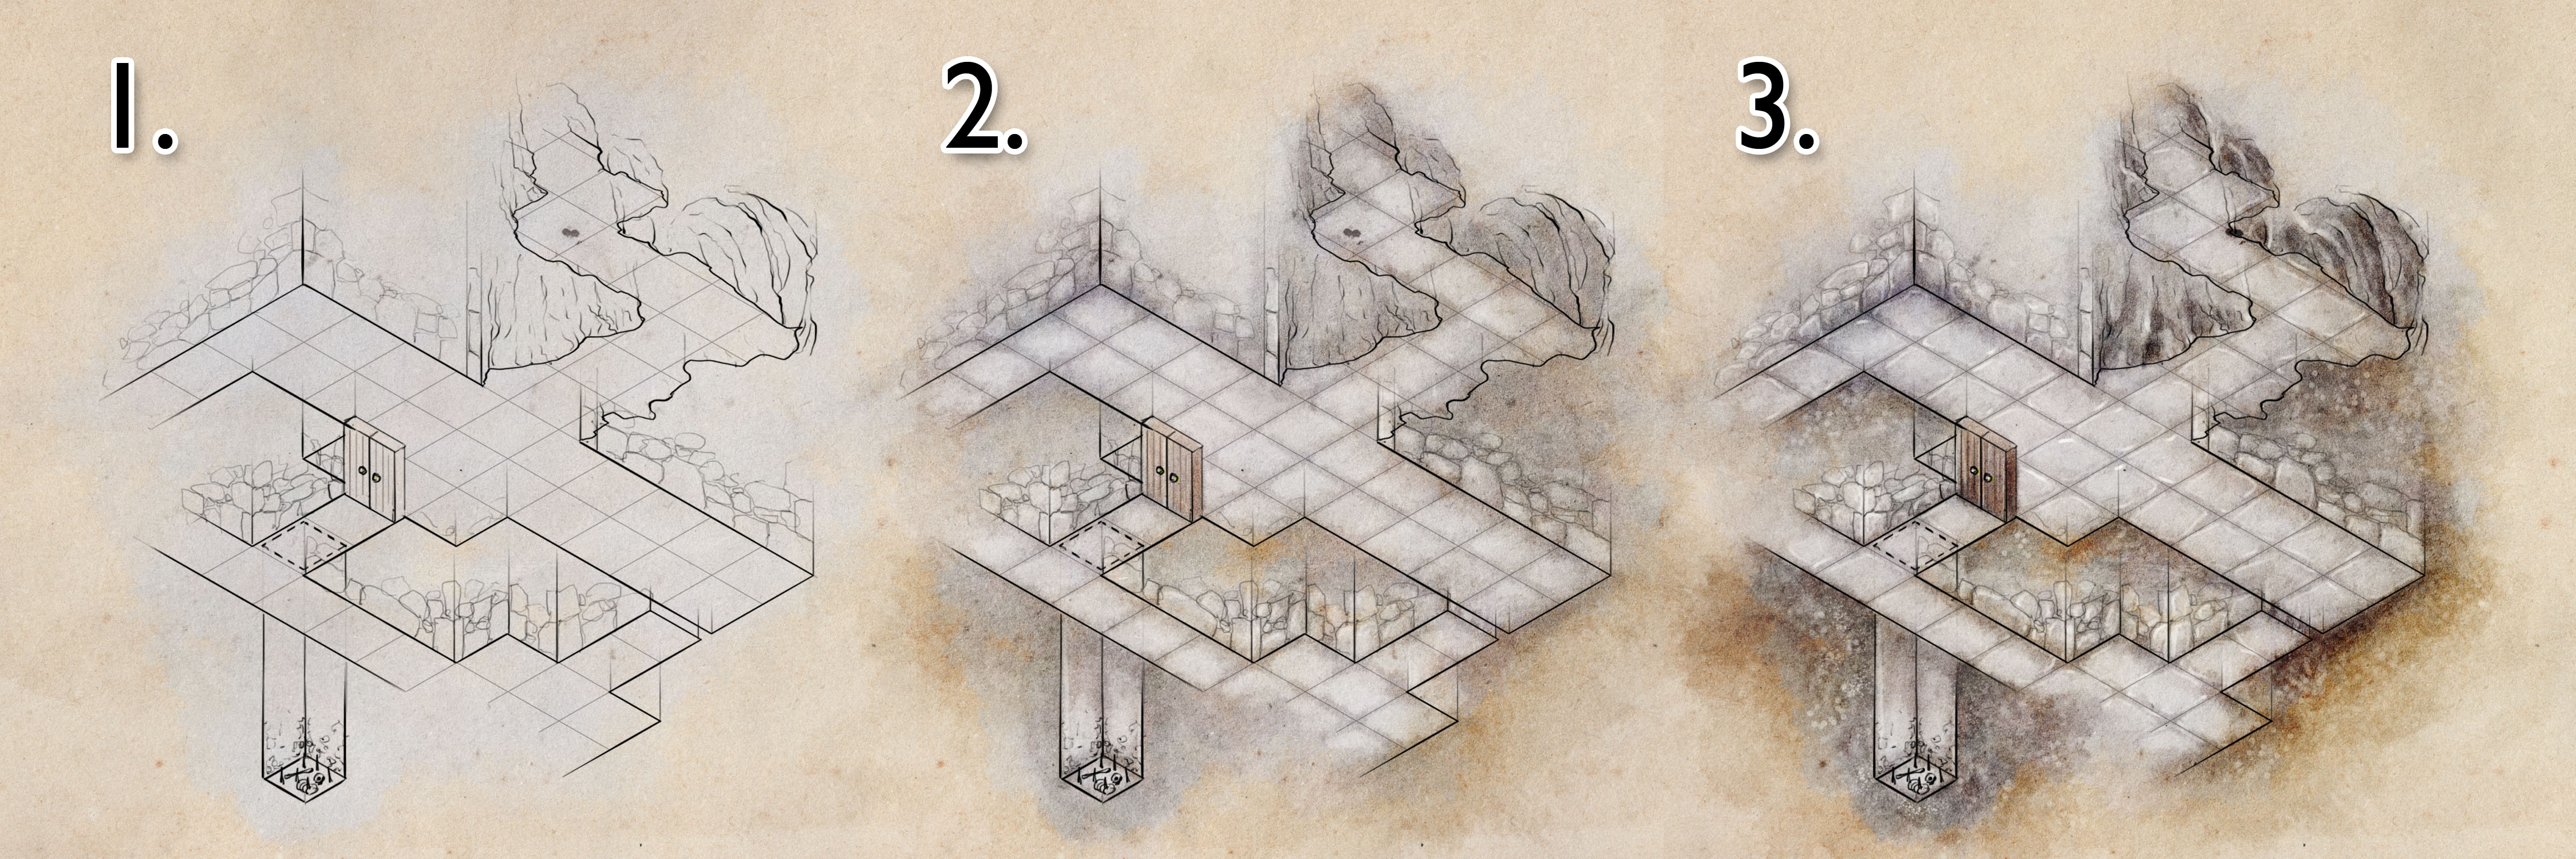 How To Draw A Dungeon Map Part 2: Colour